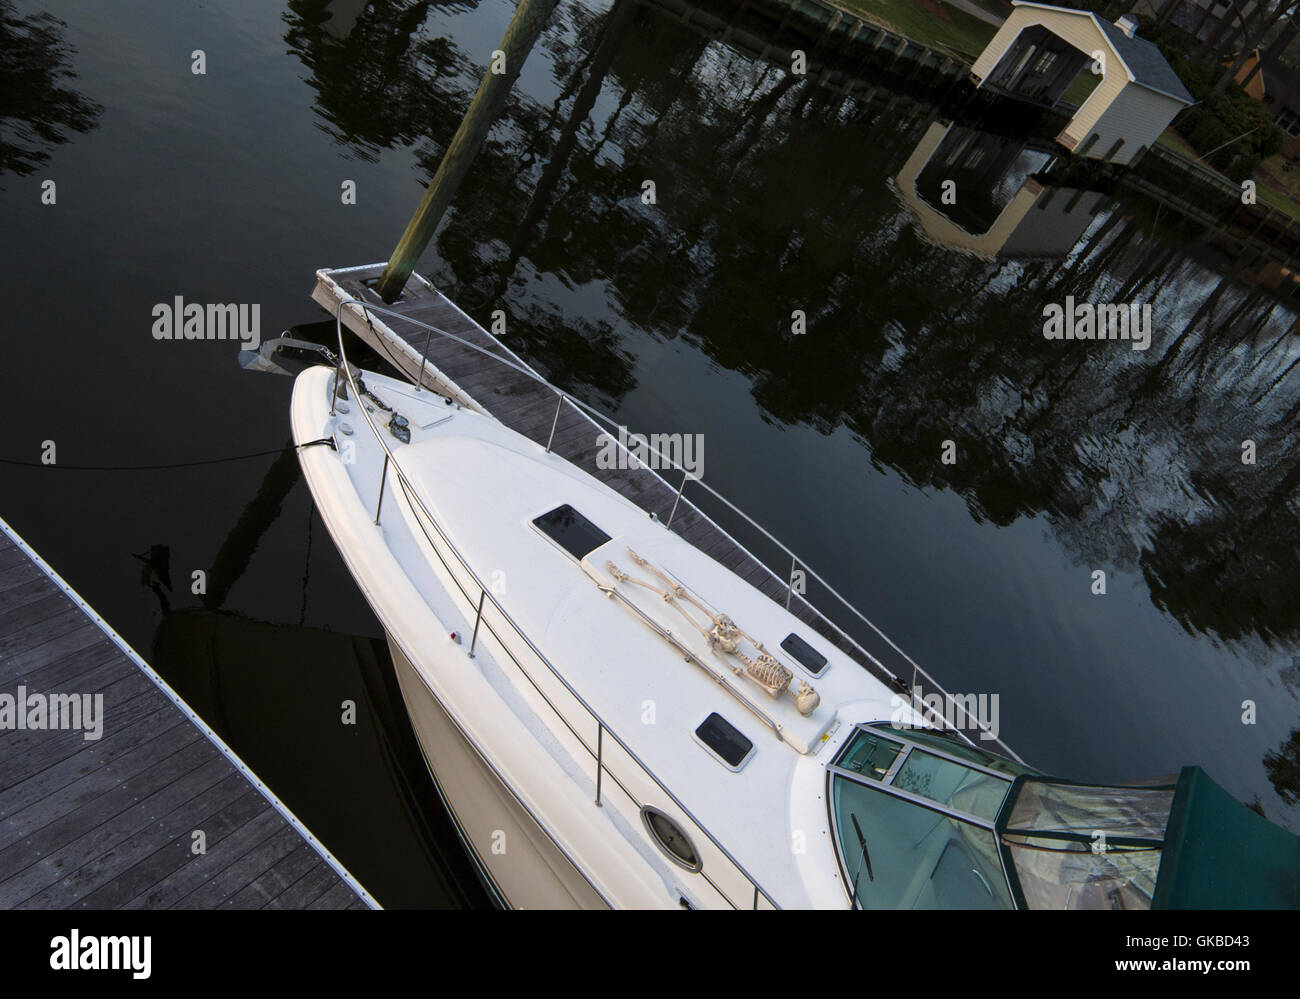 Aerial of a skeleton on the bow of a Sea Ray 340, Virginia Beach, VA - Stock Image